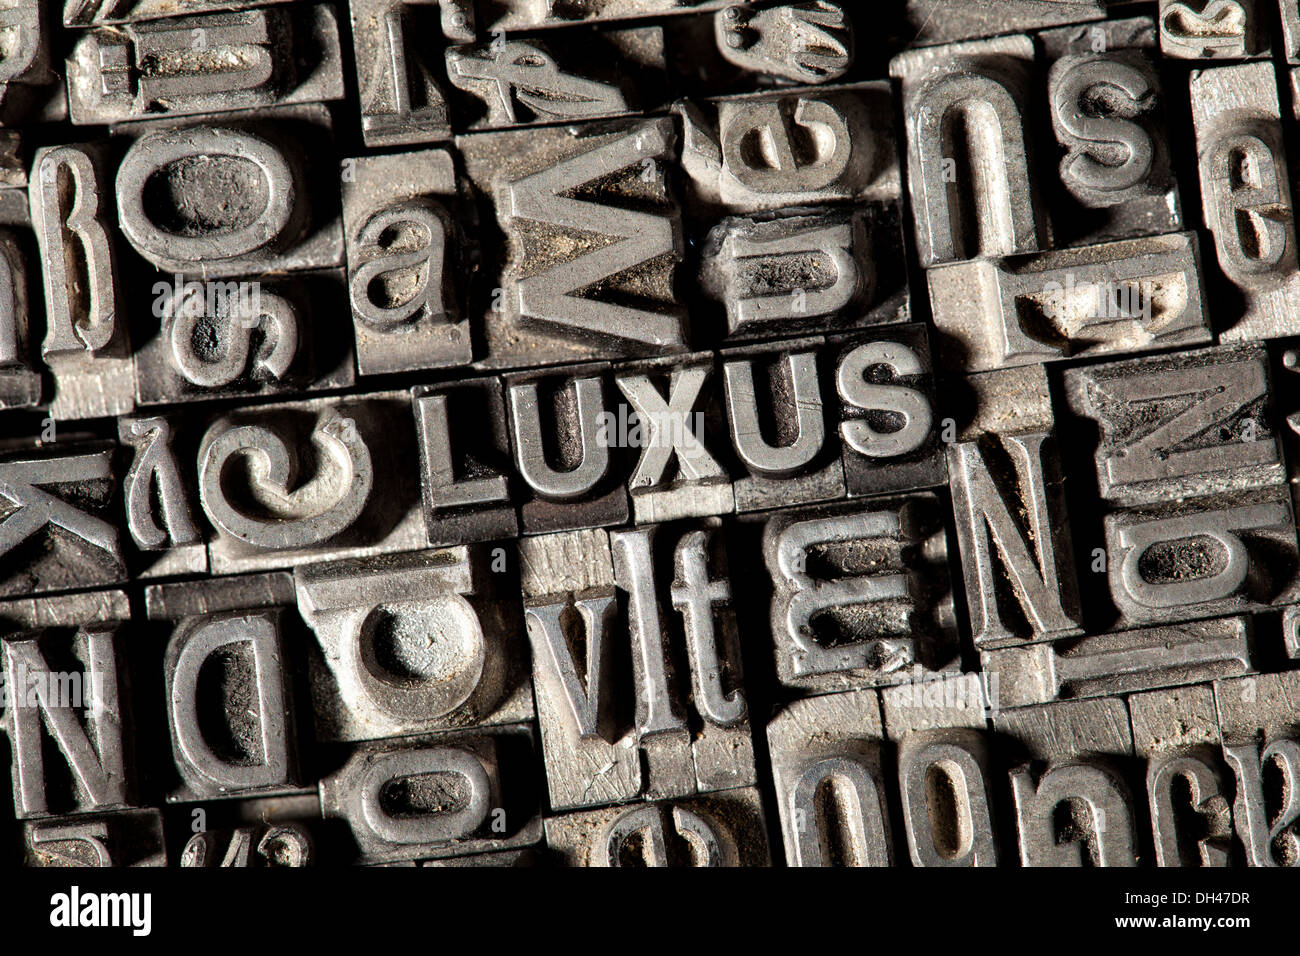 Old lead letters forming the word 'LUXUS', German for 'LUXURY' - Stock Image